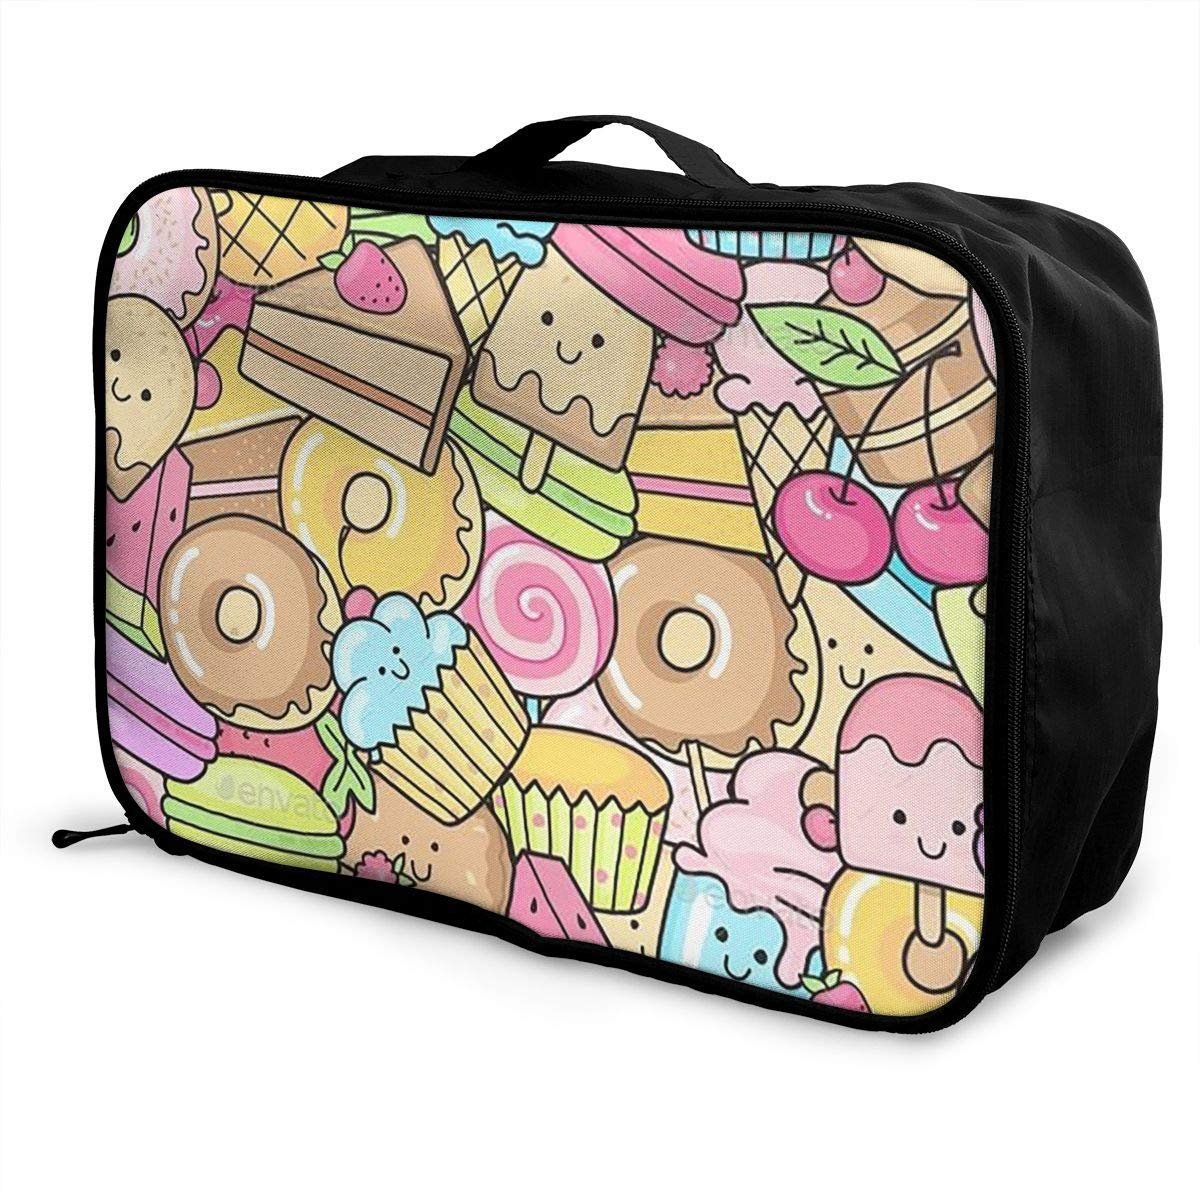 Portable Luggage Duffel Bag Dessert Travel Bags Carry-on In Trolley Handle